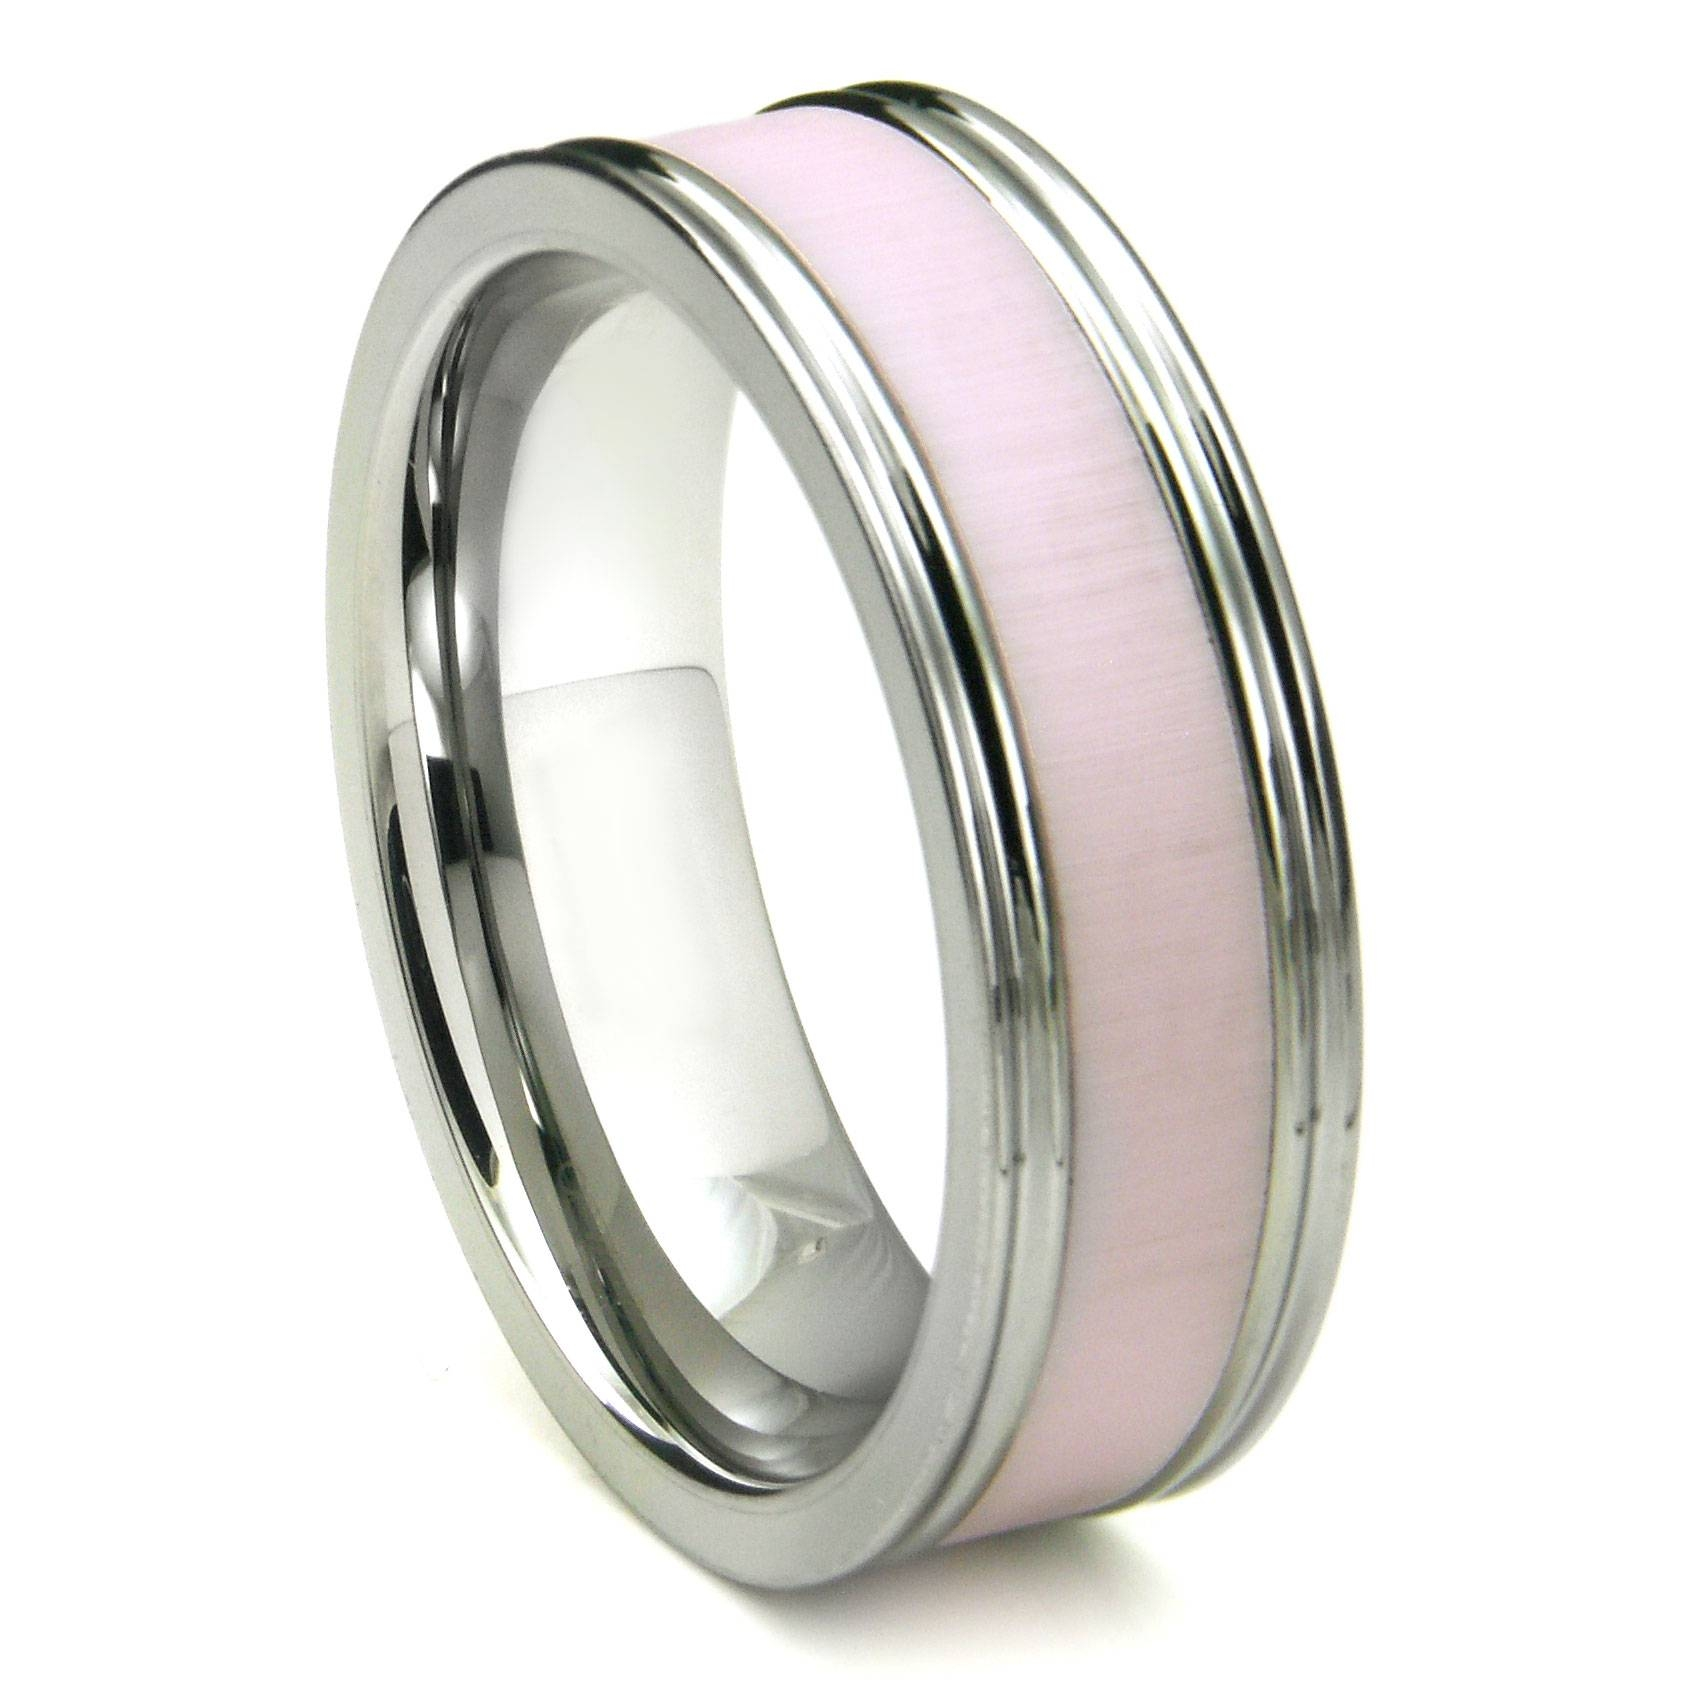 Tungsten Carbide Pink Ceramic Inlay Wedding Band Ring W With Regard To Ceramic Wedding Bands (View 10 of 15)